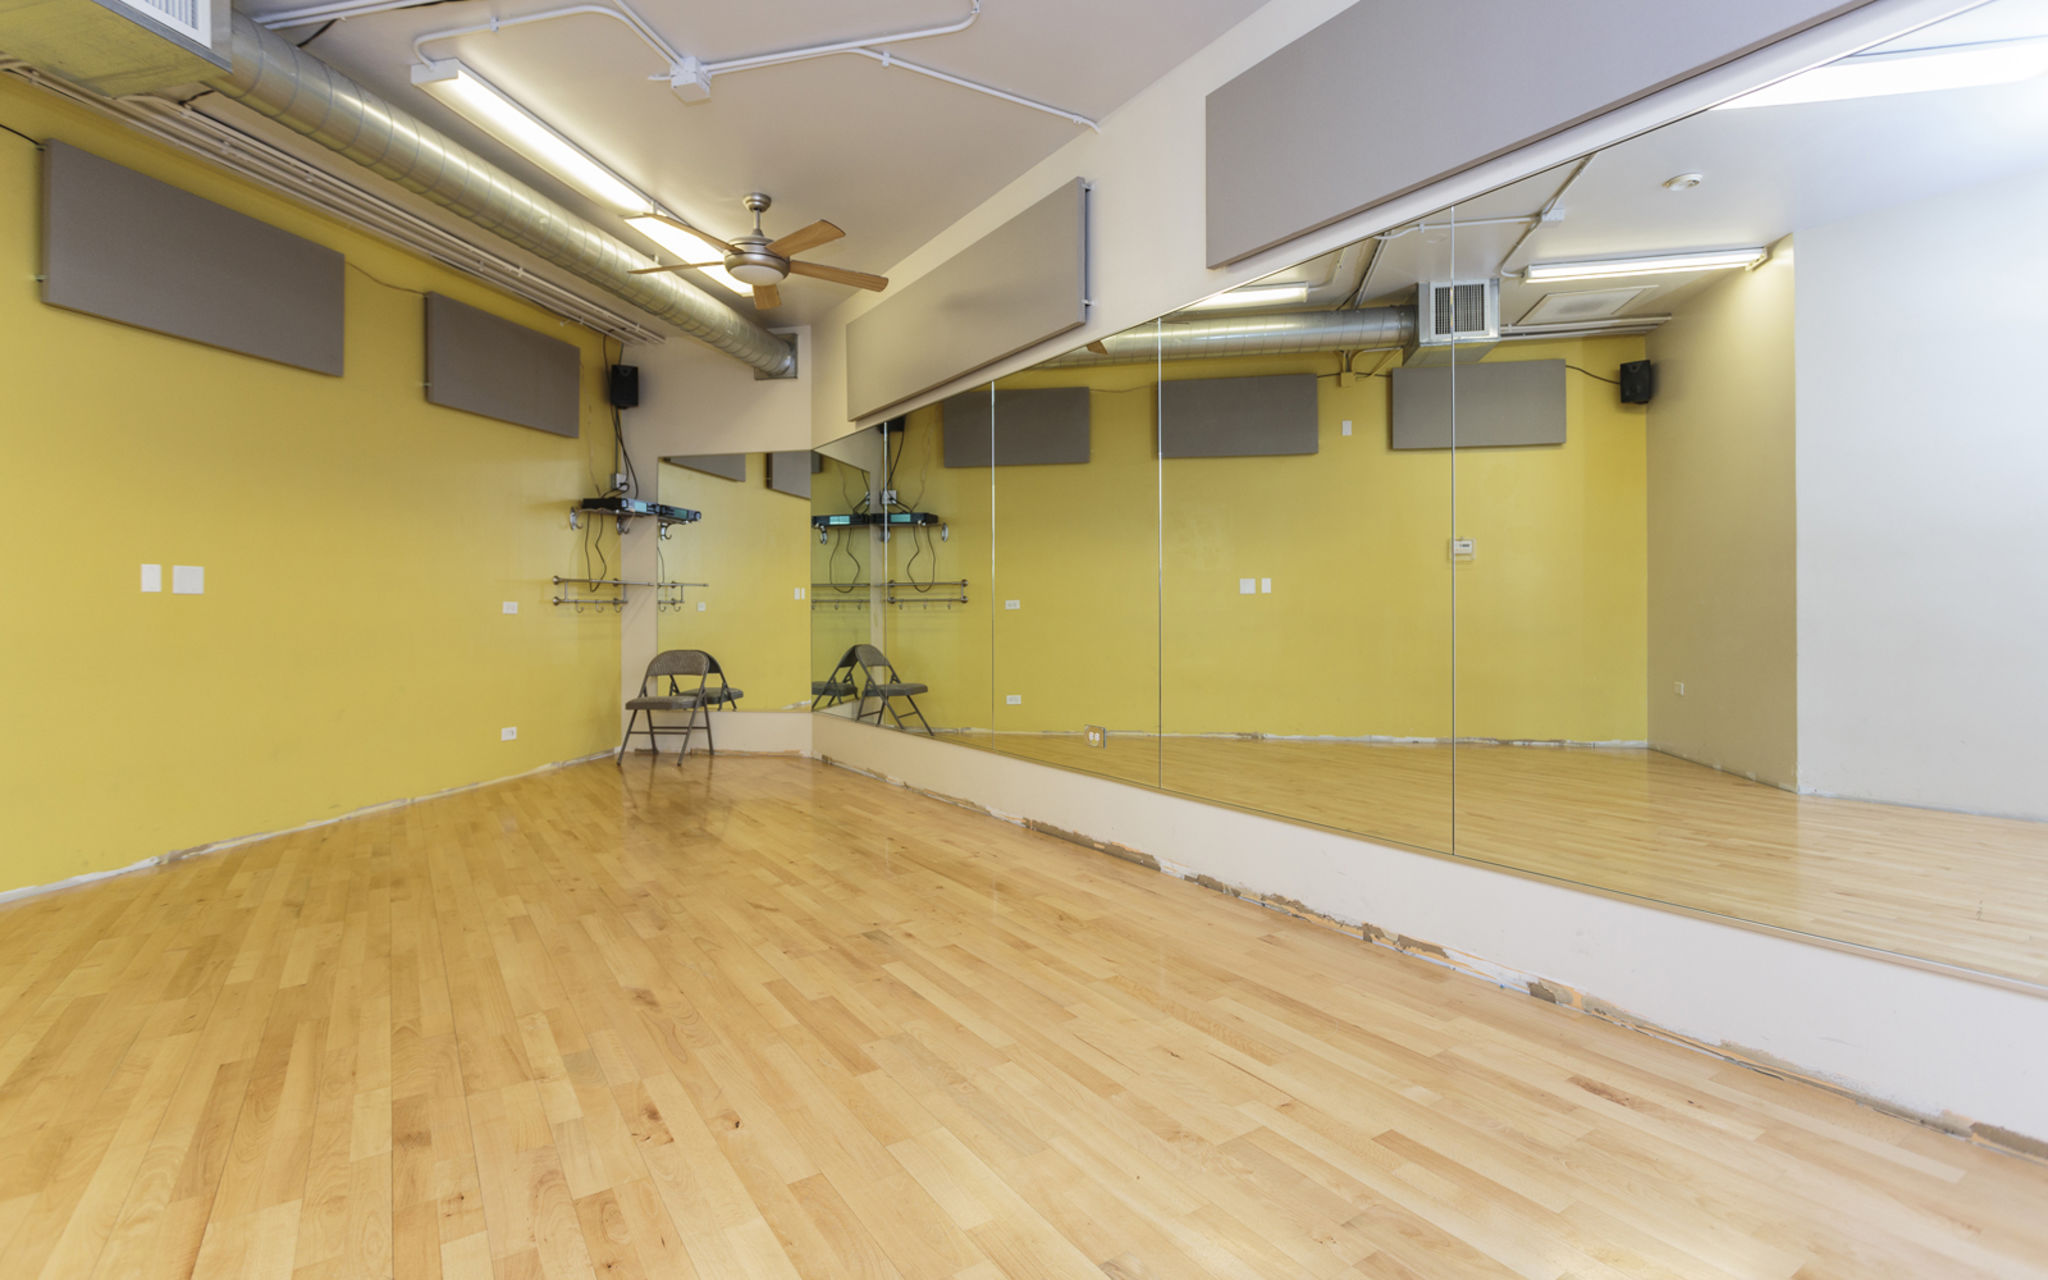 Small Dance Studio Available For Creative Use Studio 1 Chicago Il Production Peerspace